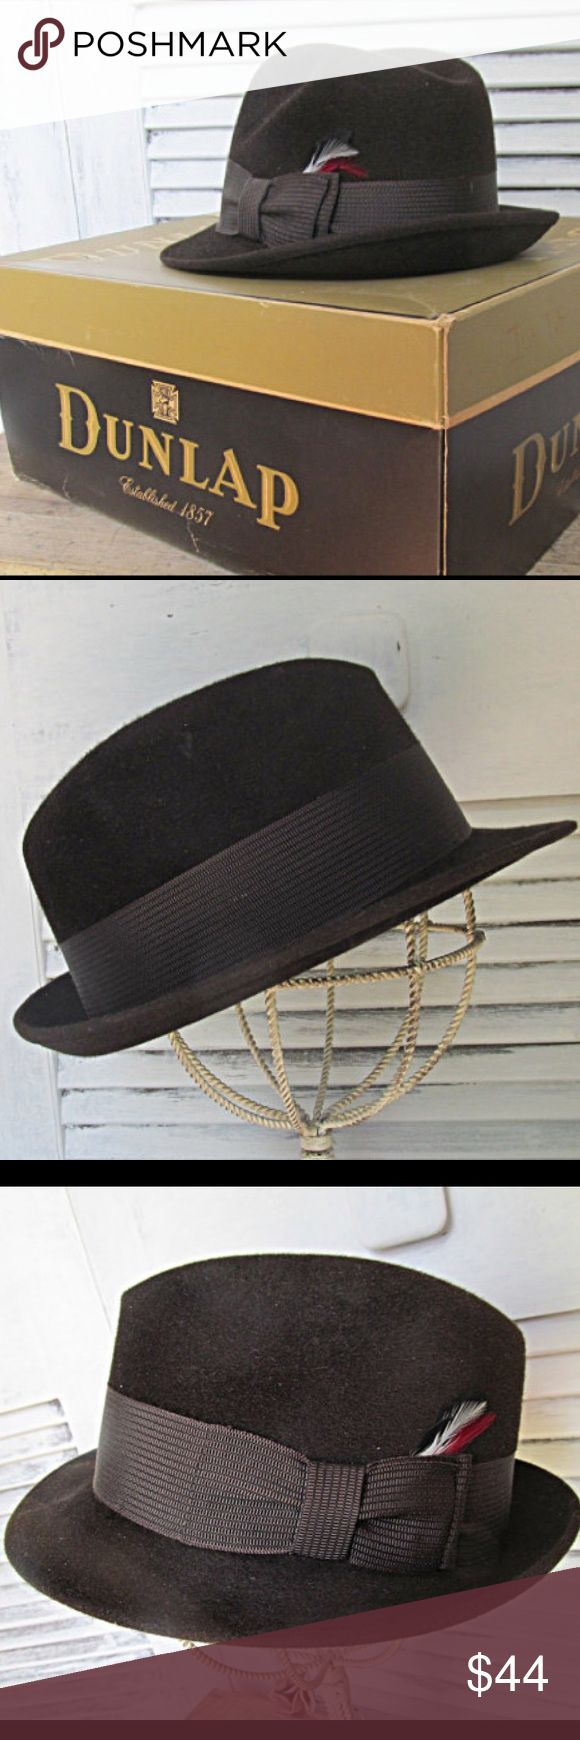 "Vintage Dunlap Fedora Brown  Hat in Original Box Pristine Dark Brown fedora has a red and white feather detail. This hat is adorned with a wide ribbon. Circumference measures 22""  Inner markings read: Dunlap Supreme New York Publix Store For Men Royal Oak Size 6 7/8 Silk Finish  Fedora Brown Mens Vintage Hat Size 7 Rare Collectible Old Stetson  Photos offer the best description. Thanks for looking Dunlop Accessories Hats"